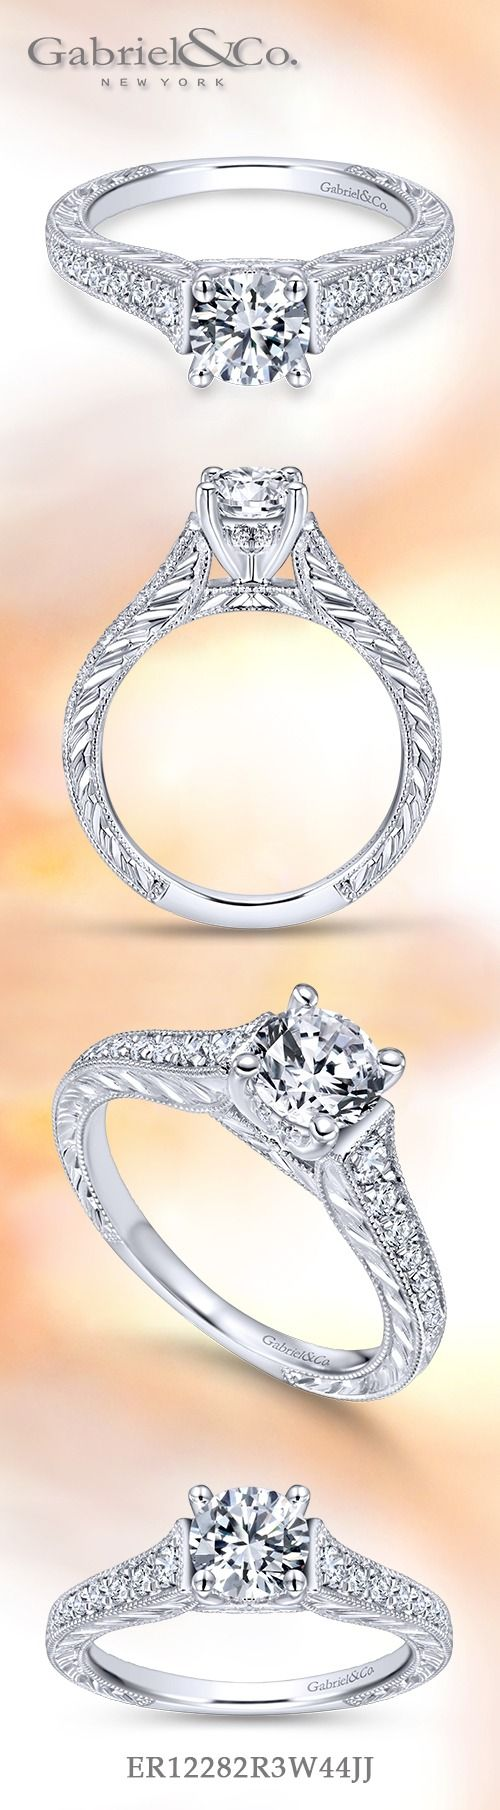 72 best Gabriel NY images on Pinterest | Jewerly, Rings and Jewel